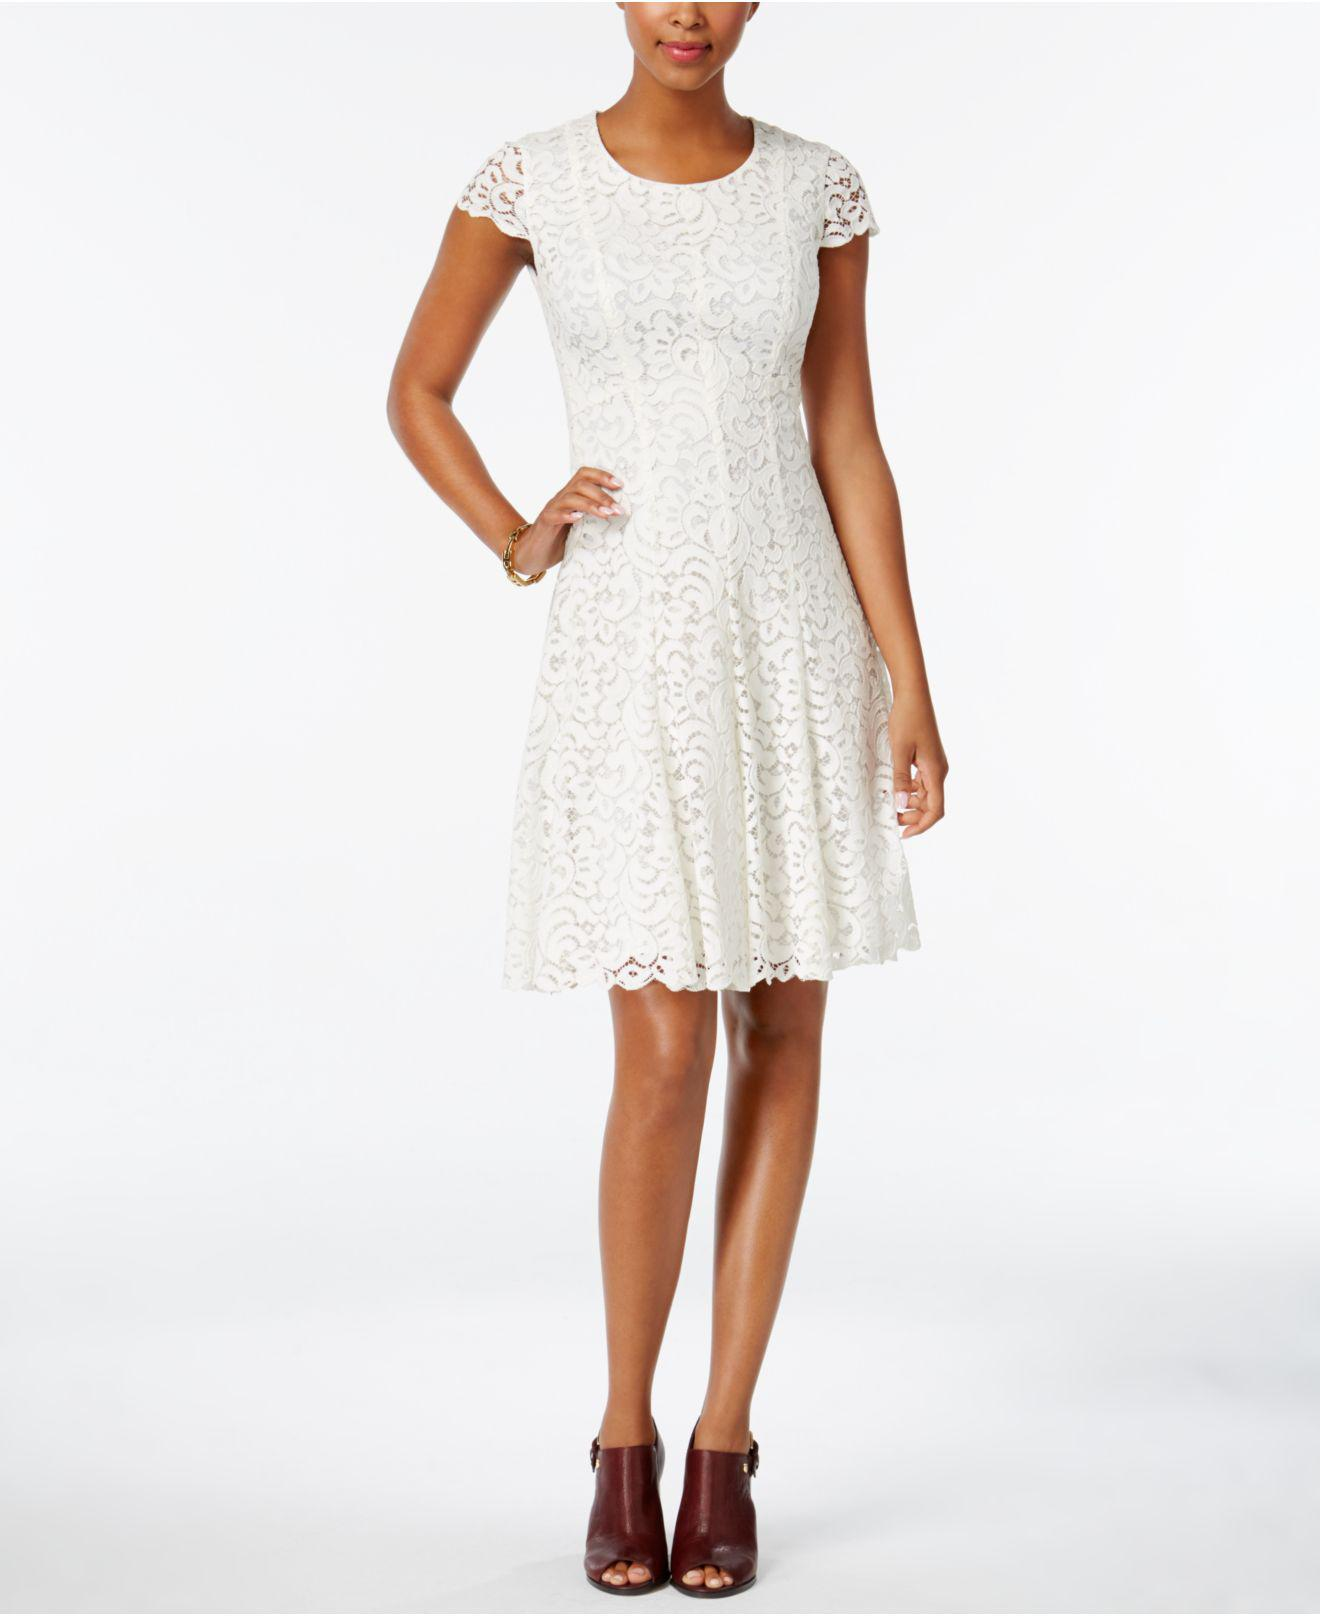 Tommy Hilfiger Lace Fit Amp Flare Dress In White Lyst